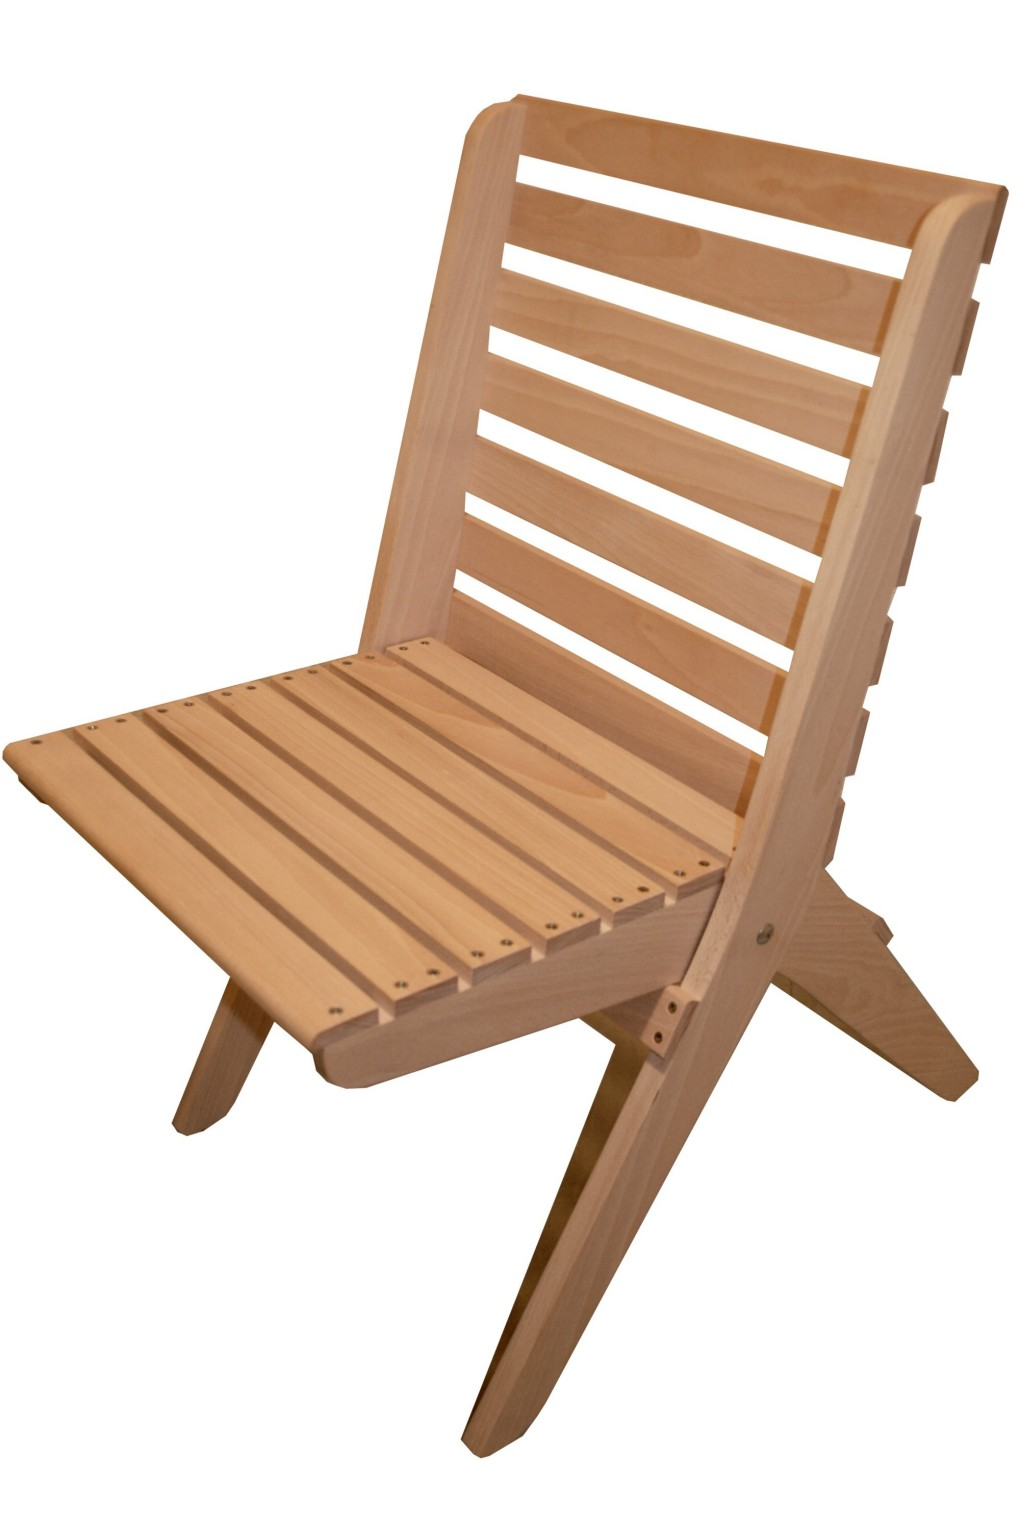 Stef Chair beech - L size, made of  beech wood, uncoloured, not impregnated, optional: coloured, impregnated